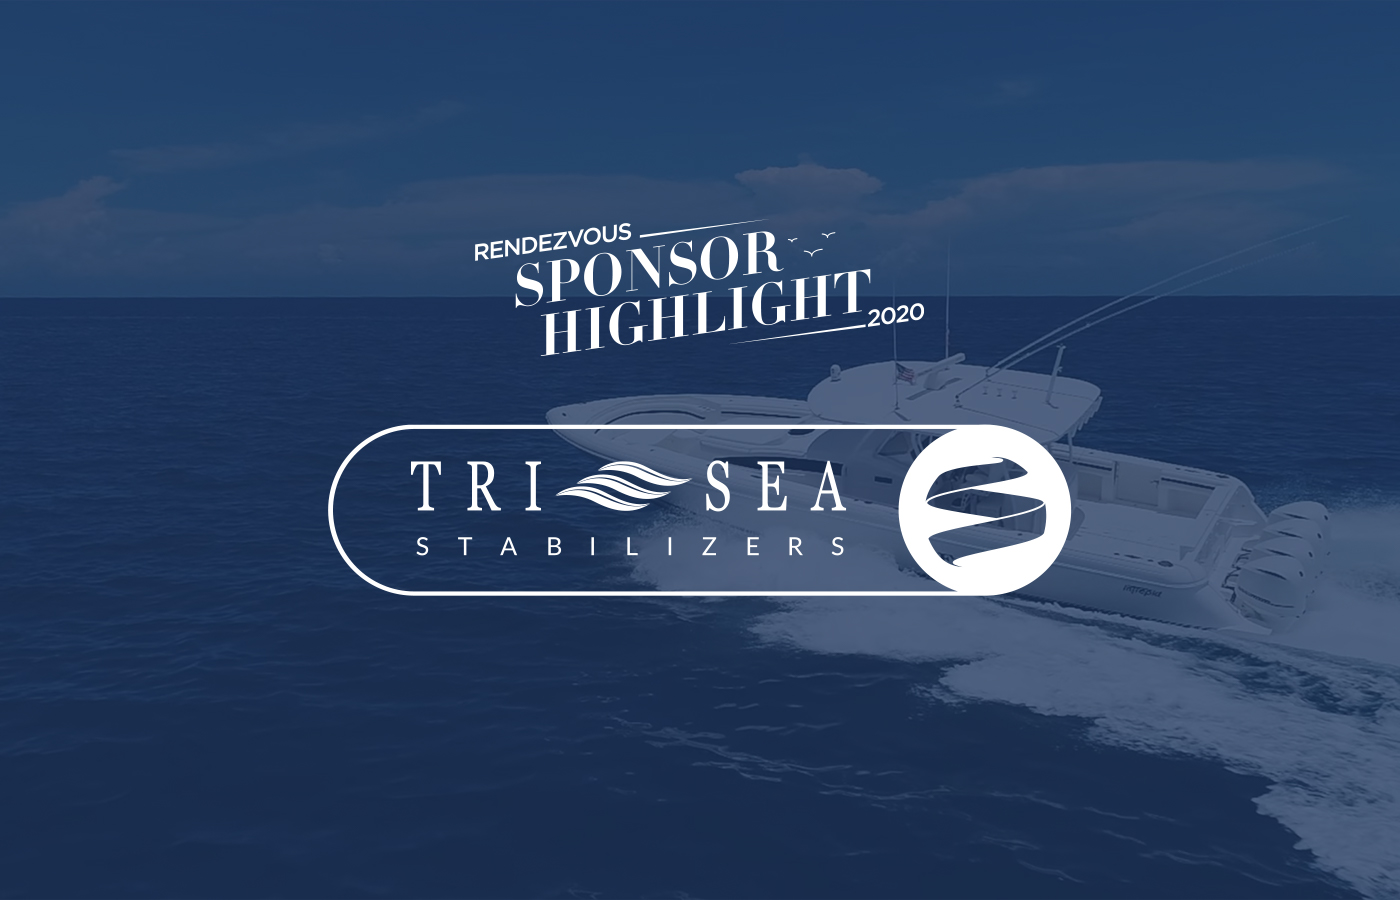 Rendezvous Sponsor Highlight: Tri Sea Stabilizers